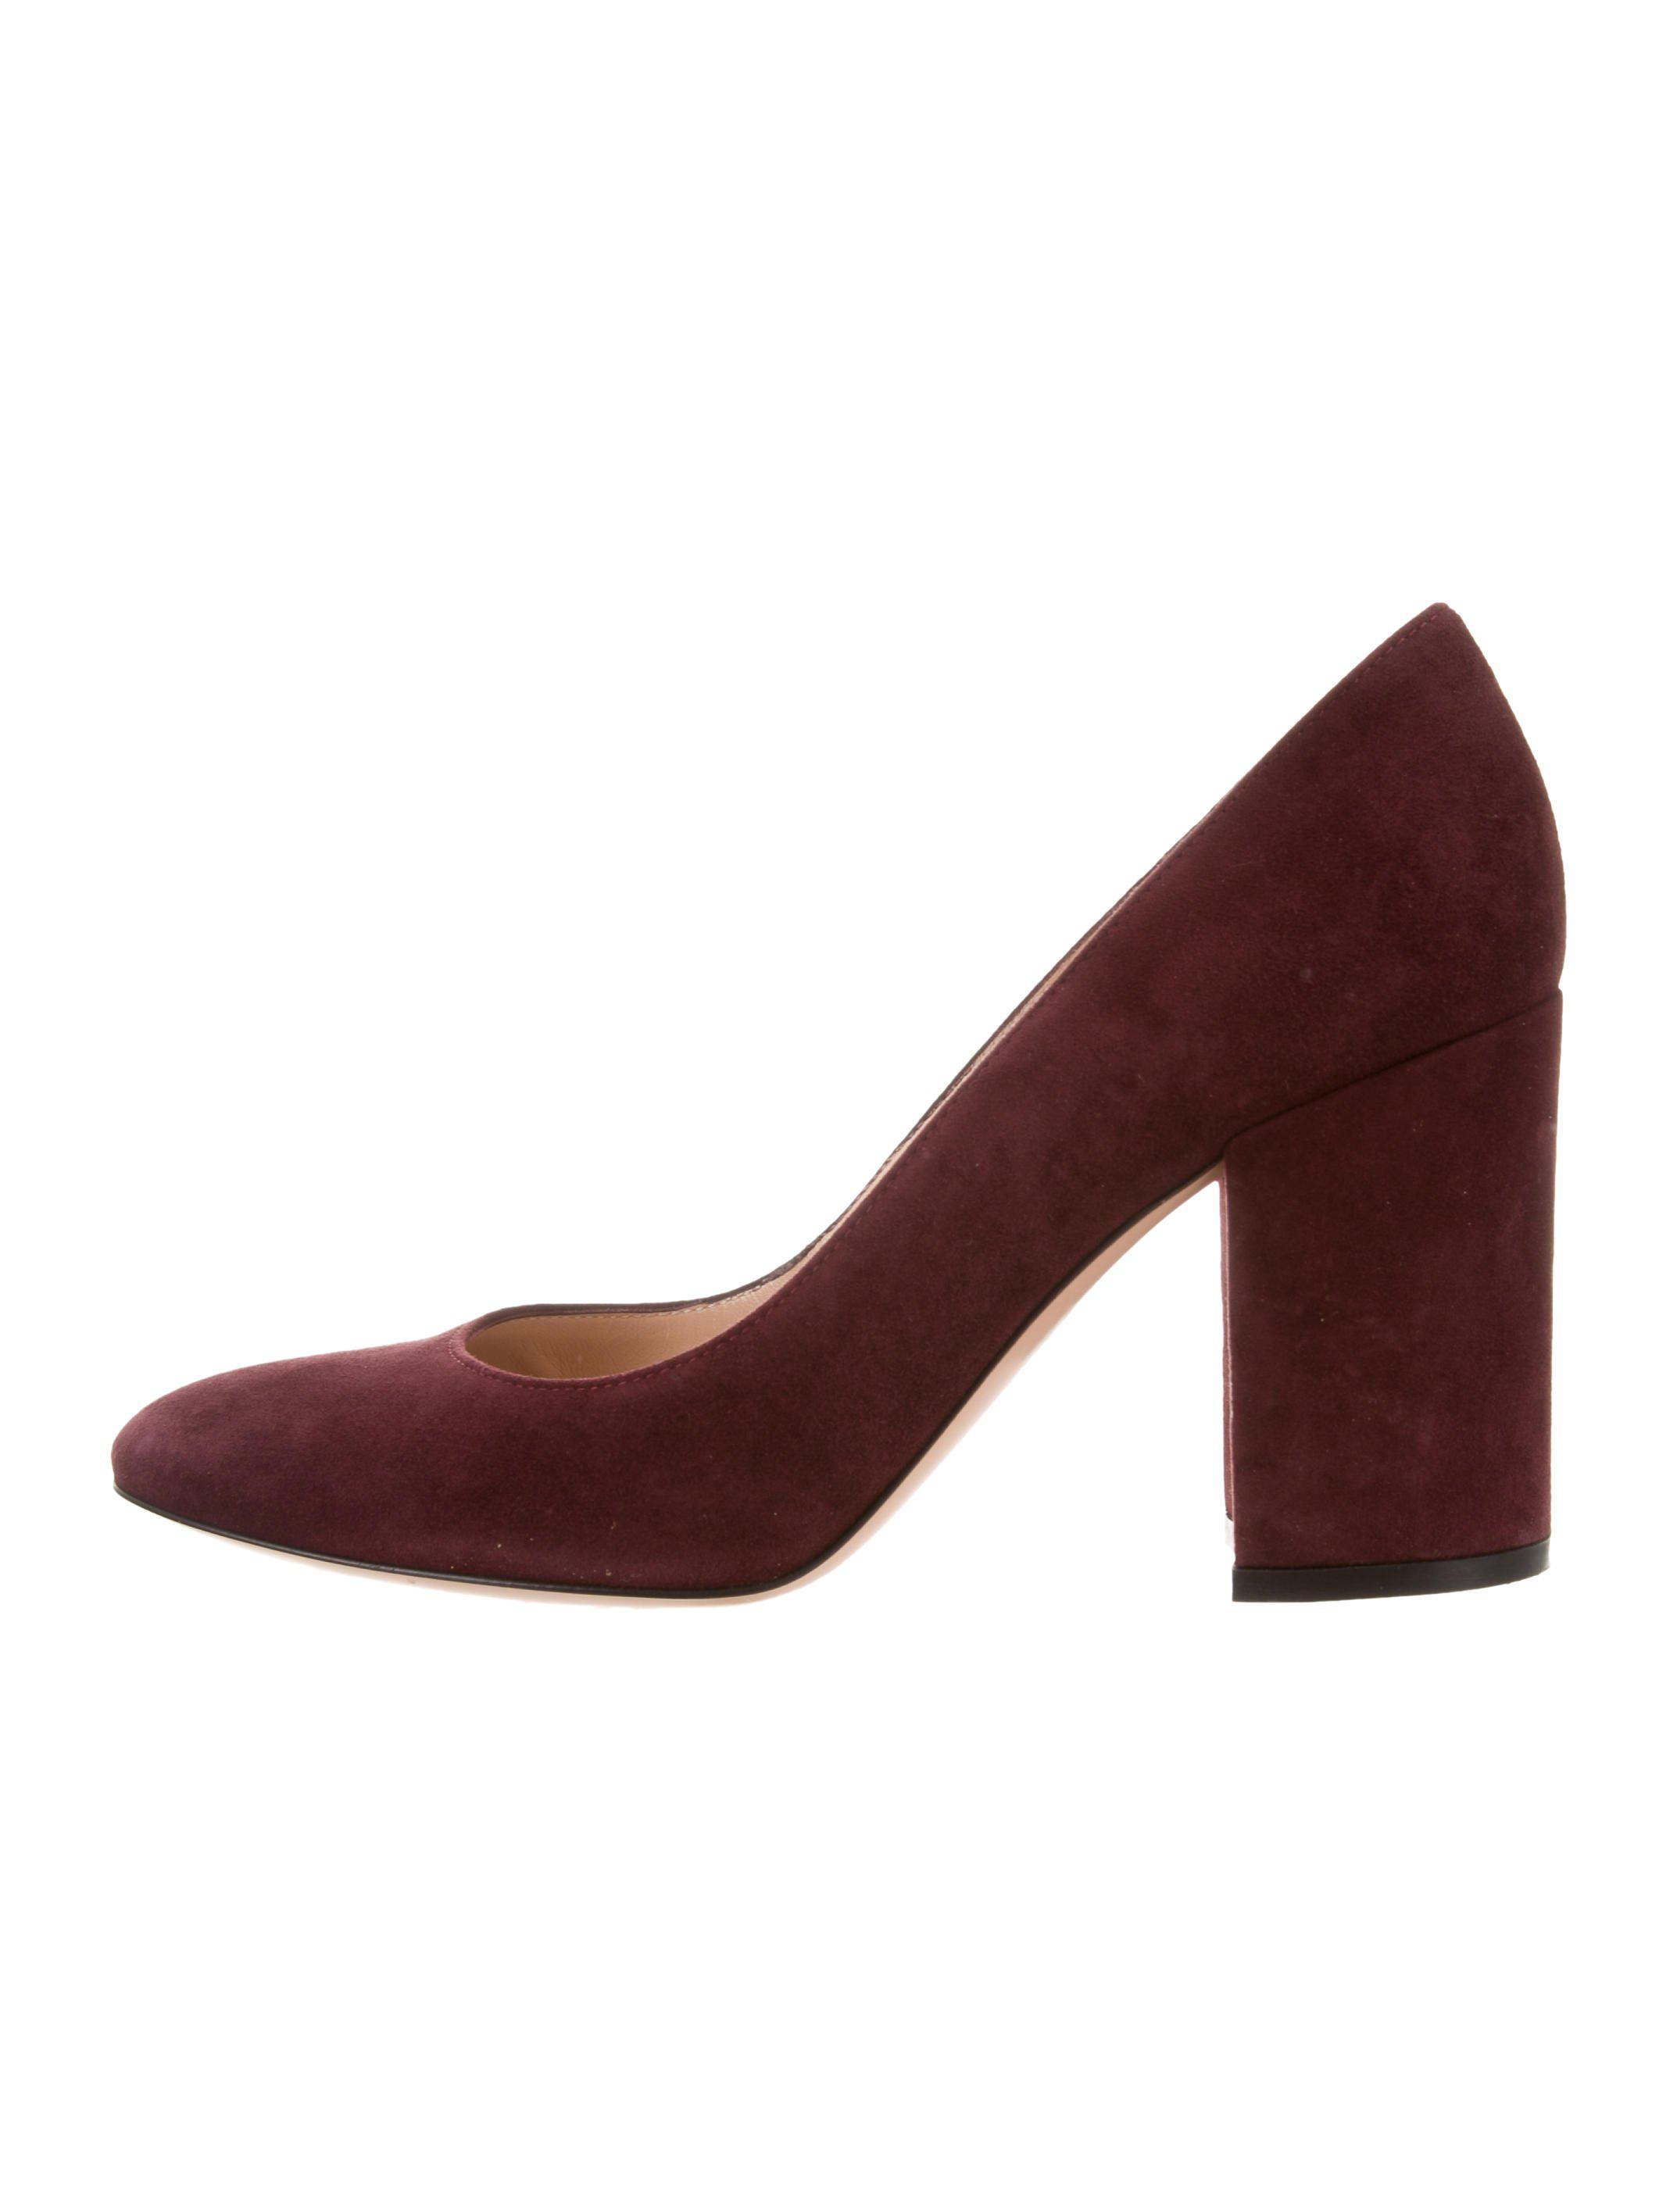 b7e37c9a8852 Lyst - Gianvito Rossi Suede Round-toe Pumps Burgundy in Red